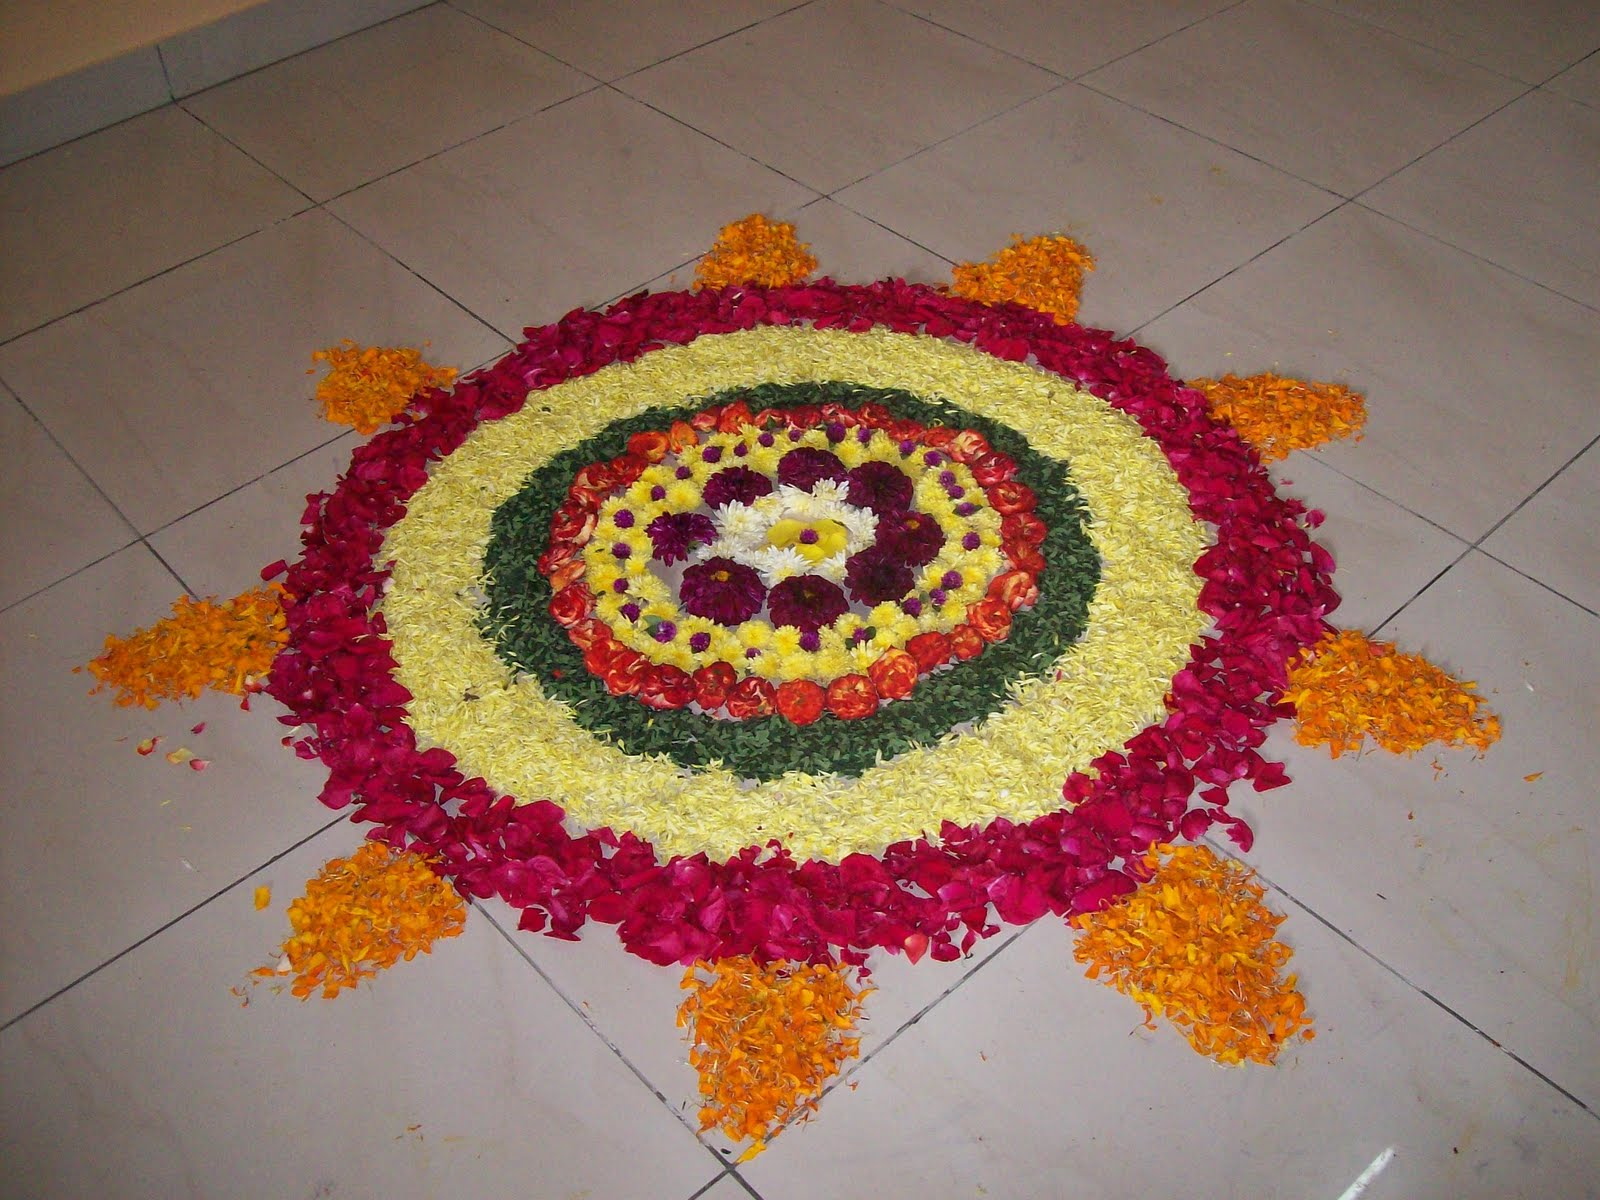 Free Wallpaper Wallpapers Rangoli Art Designs Flower Patterns For Festival Colorful Orkut Hi5